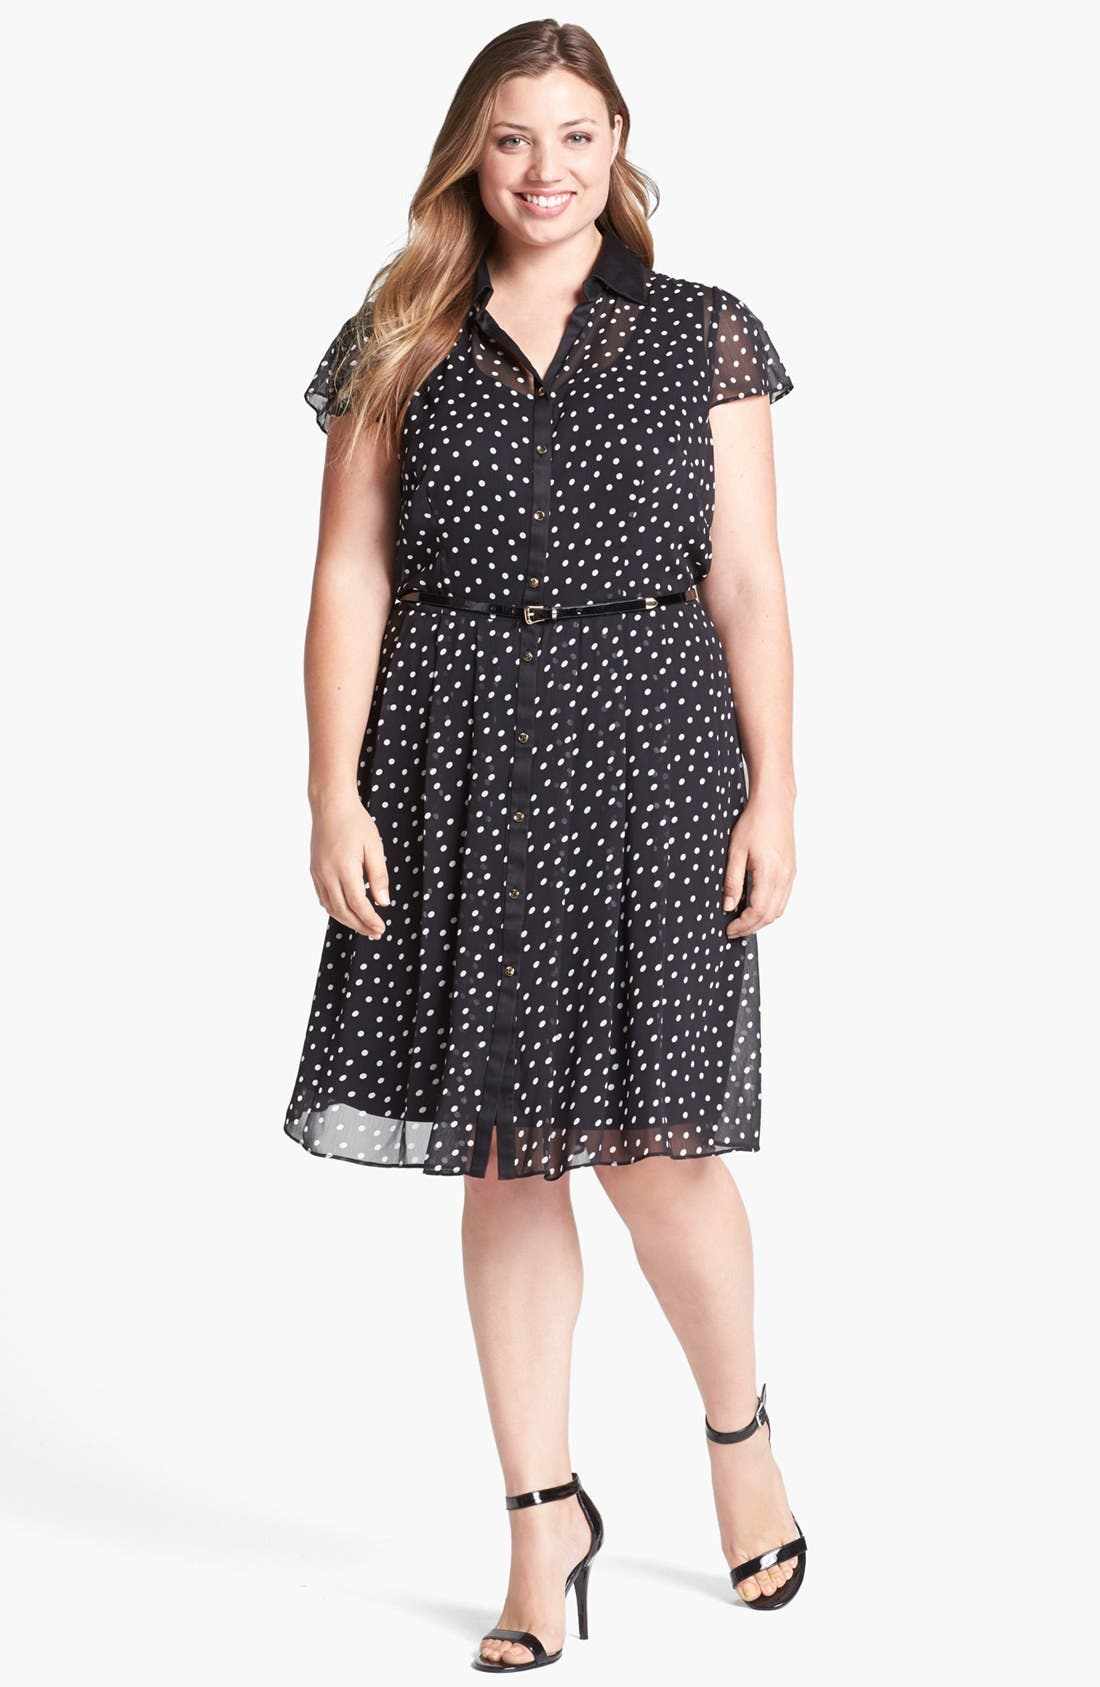 Alternate Image 1 Selected - Donna Ricco Polka Dot Chiffon Shirtdress (Plus Size)